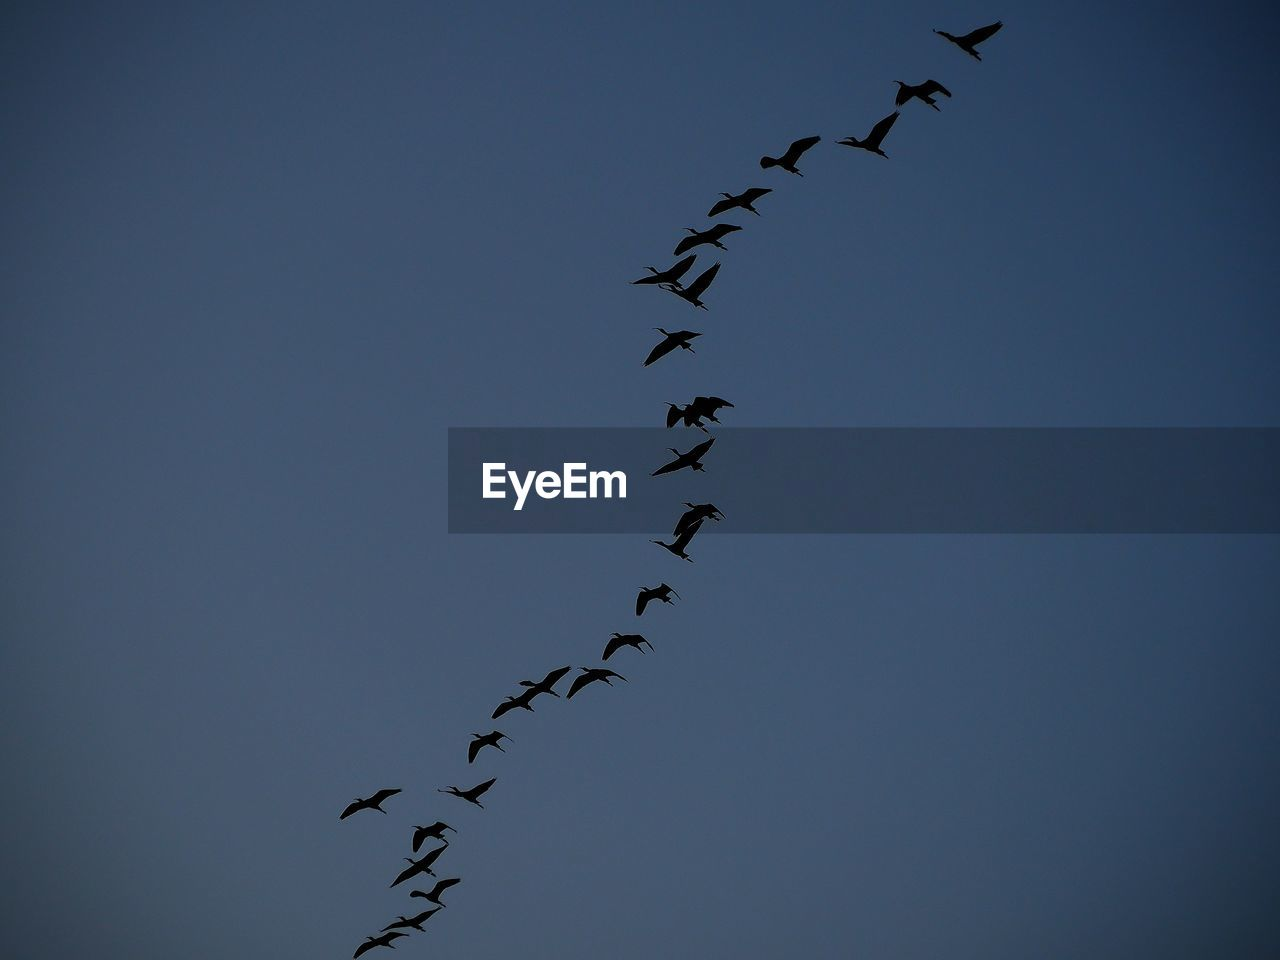 sky, vertebrate, large group of animals, bird, group of animals, low angle view, clear sky, animal, animal themes, flock of birds, animals in the wild, no people, nature, flying, animal wildlife, blue, day, copy space, outdoors, motion